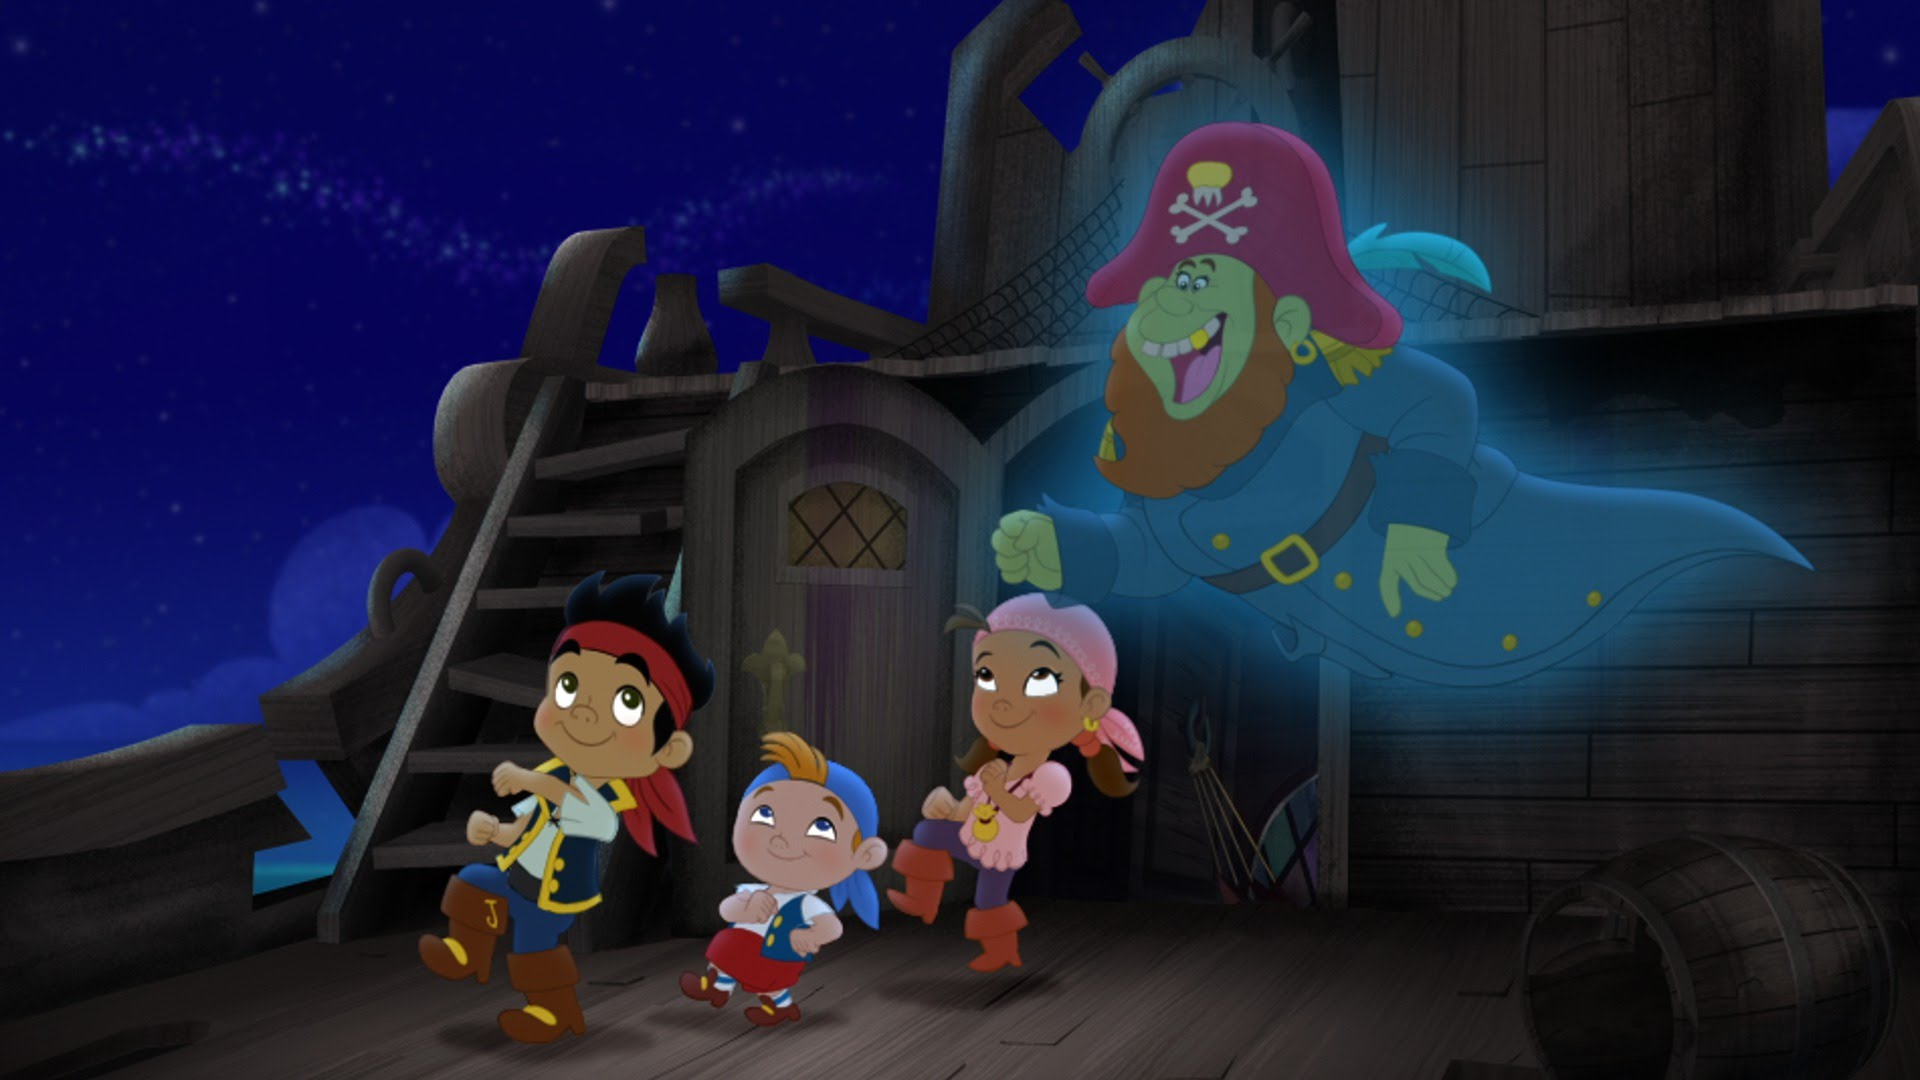 File Jake and crew with Treasure Tooth Pirate Ghost Story02 also Intro Story likewise O Que Toy Story Me Ensinou Sobre A Ciencia furthermore Blands besides Mo House 2. on story02